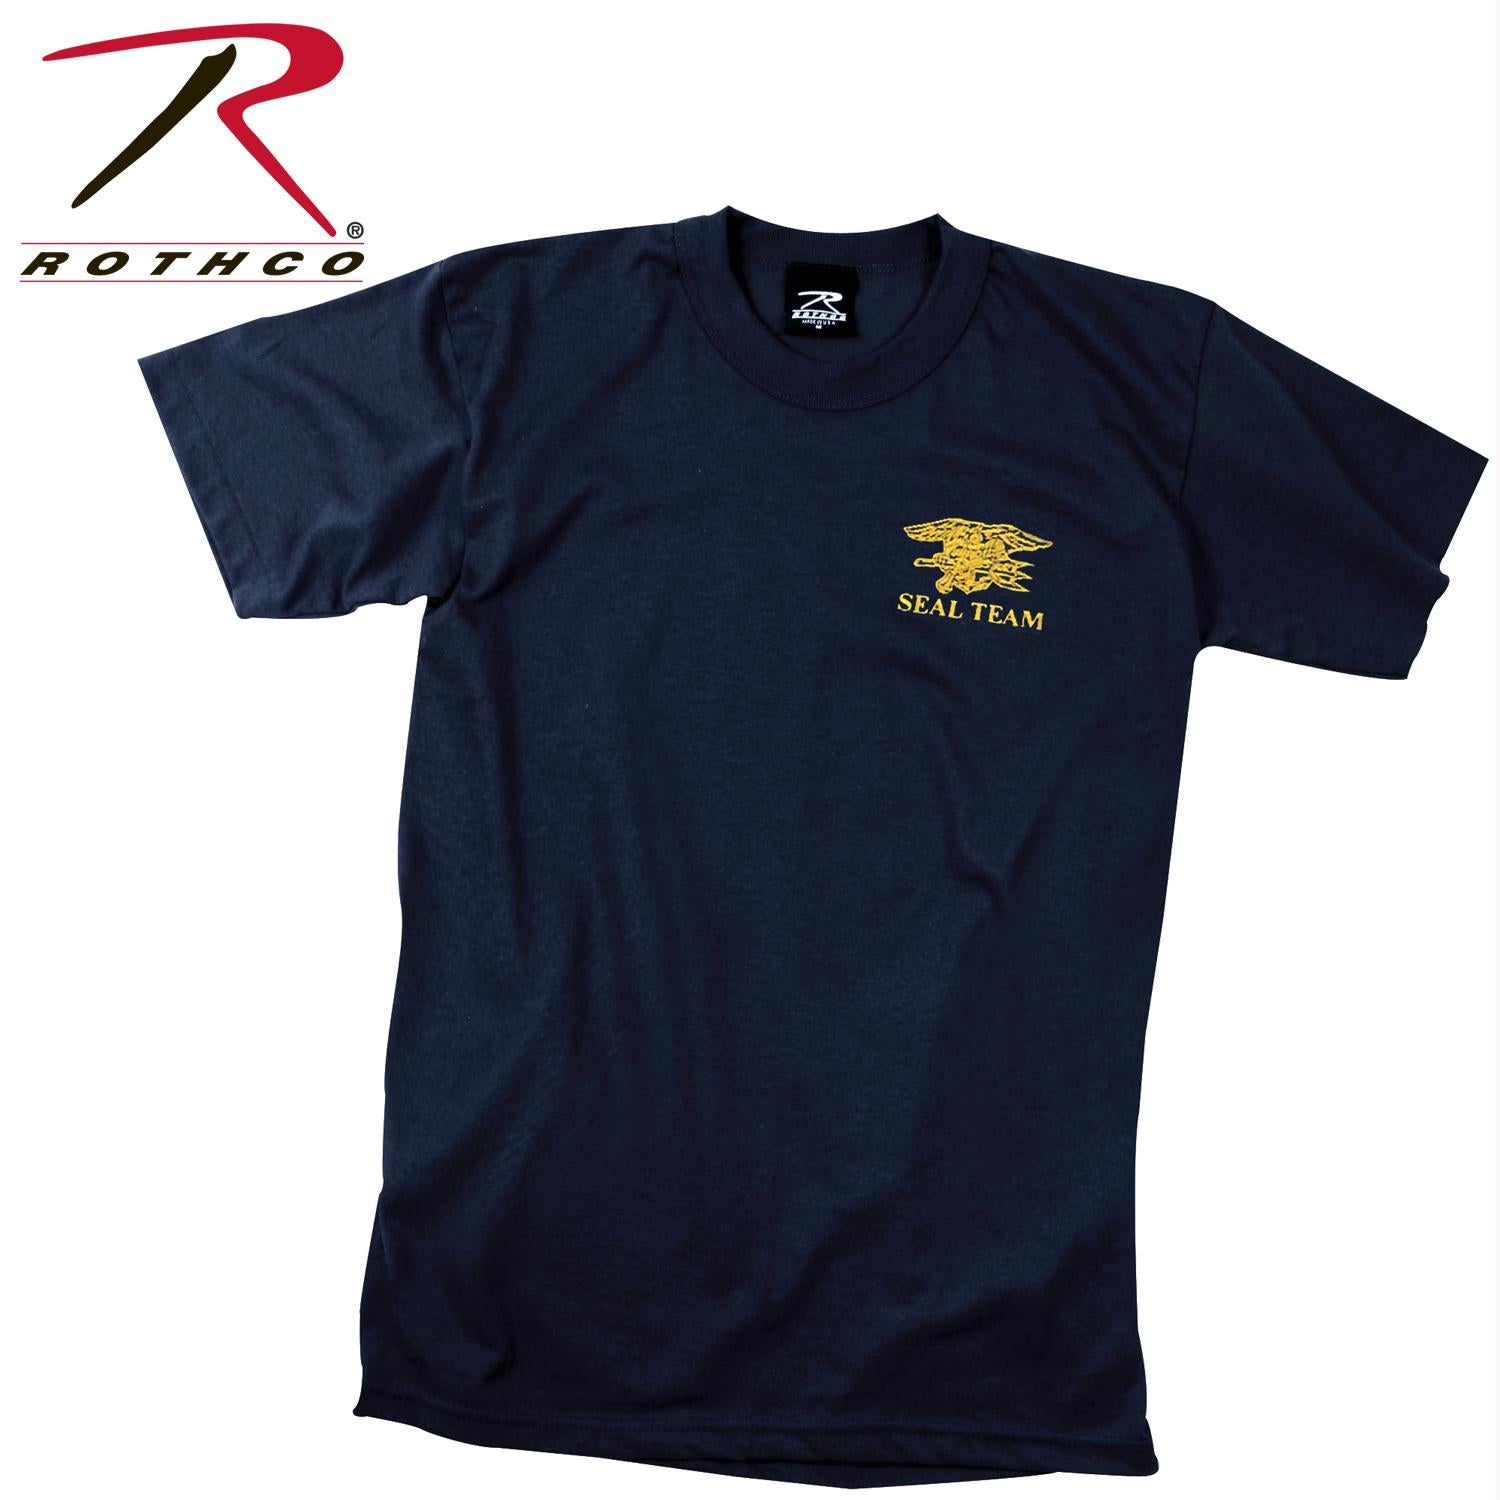 Rothco Official Navy Seals Team Logo T-shirt - L